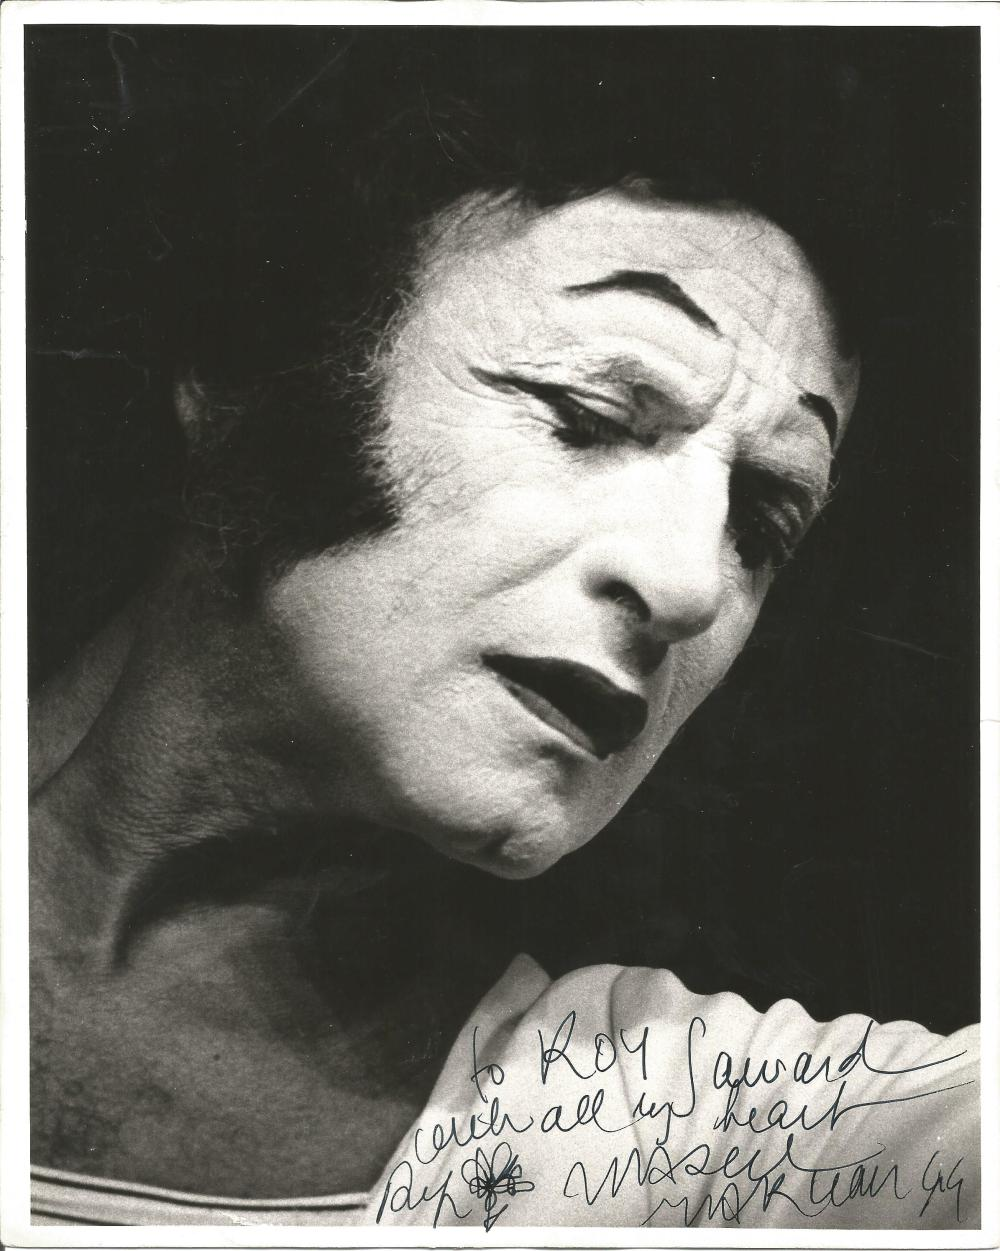 Marcel Marceau signed 10x8 b/w photo. 22 March 1923 - 22 September 2007) was a French actor and mime